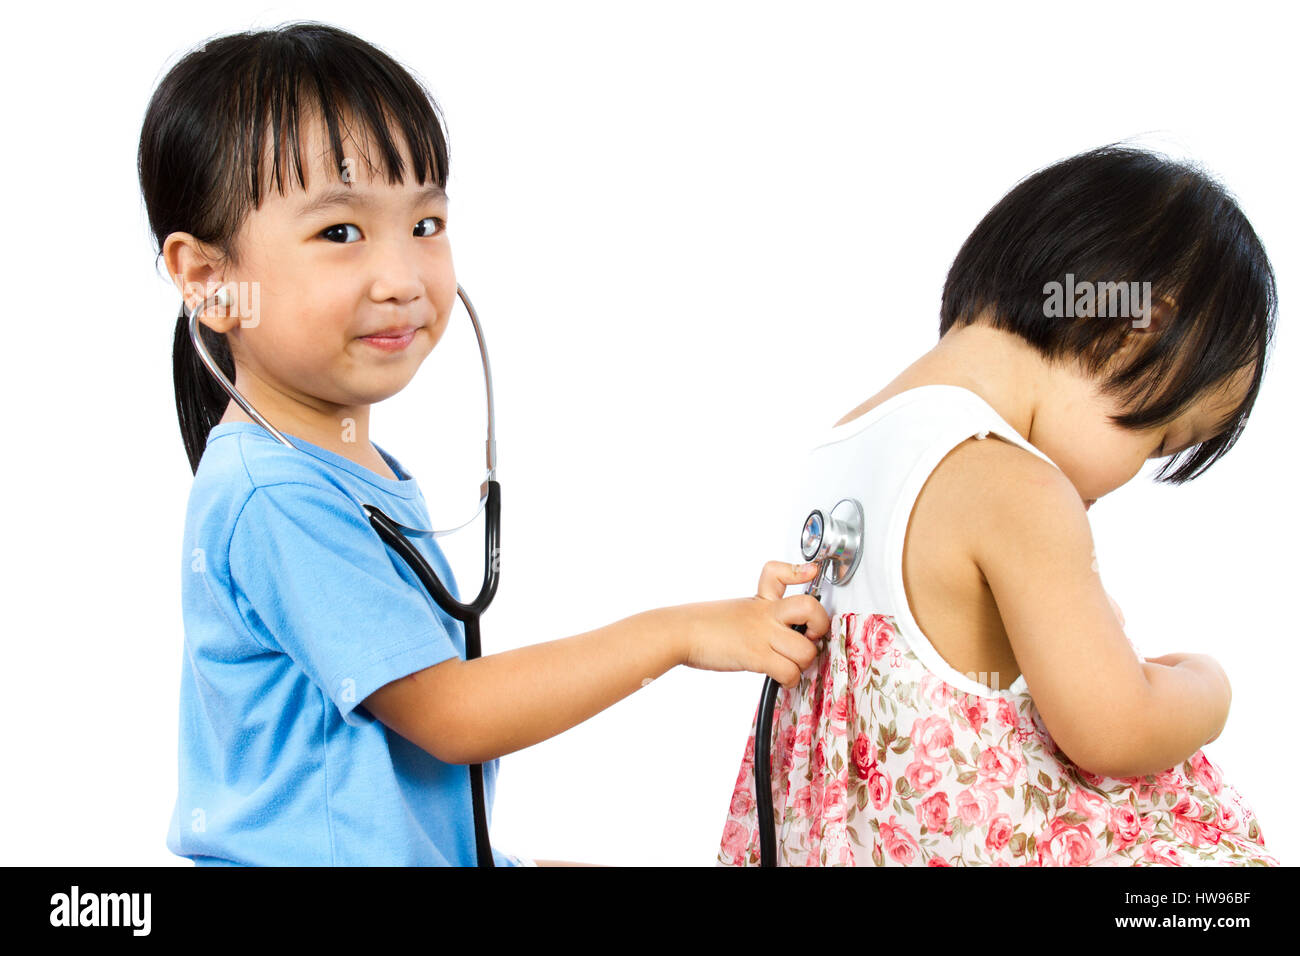 Asian Little Chinese Girls Playing as Doctor and Patient with Stethoscope isolated on white background - Stock Image